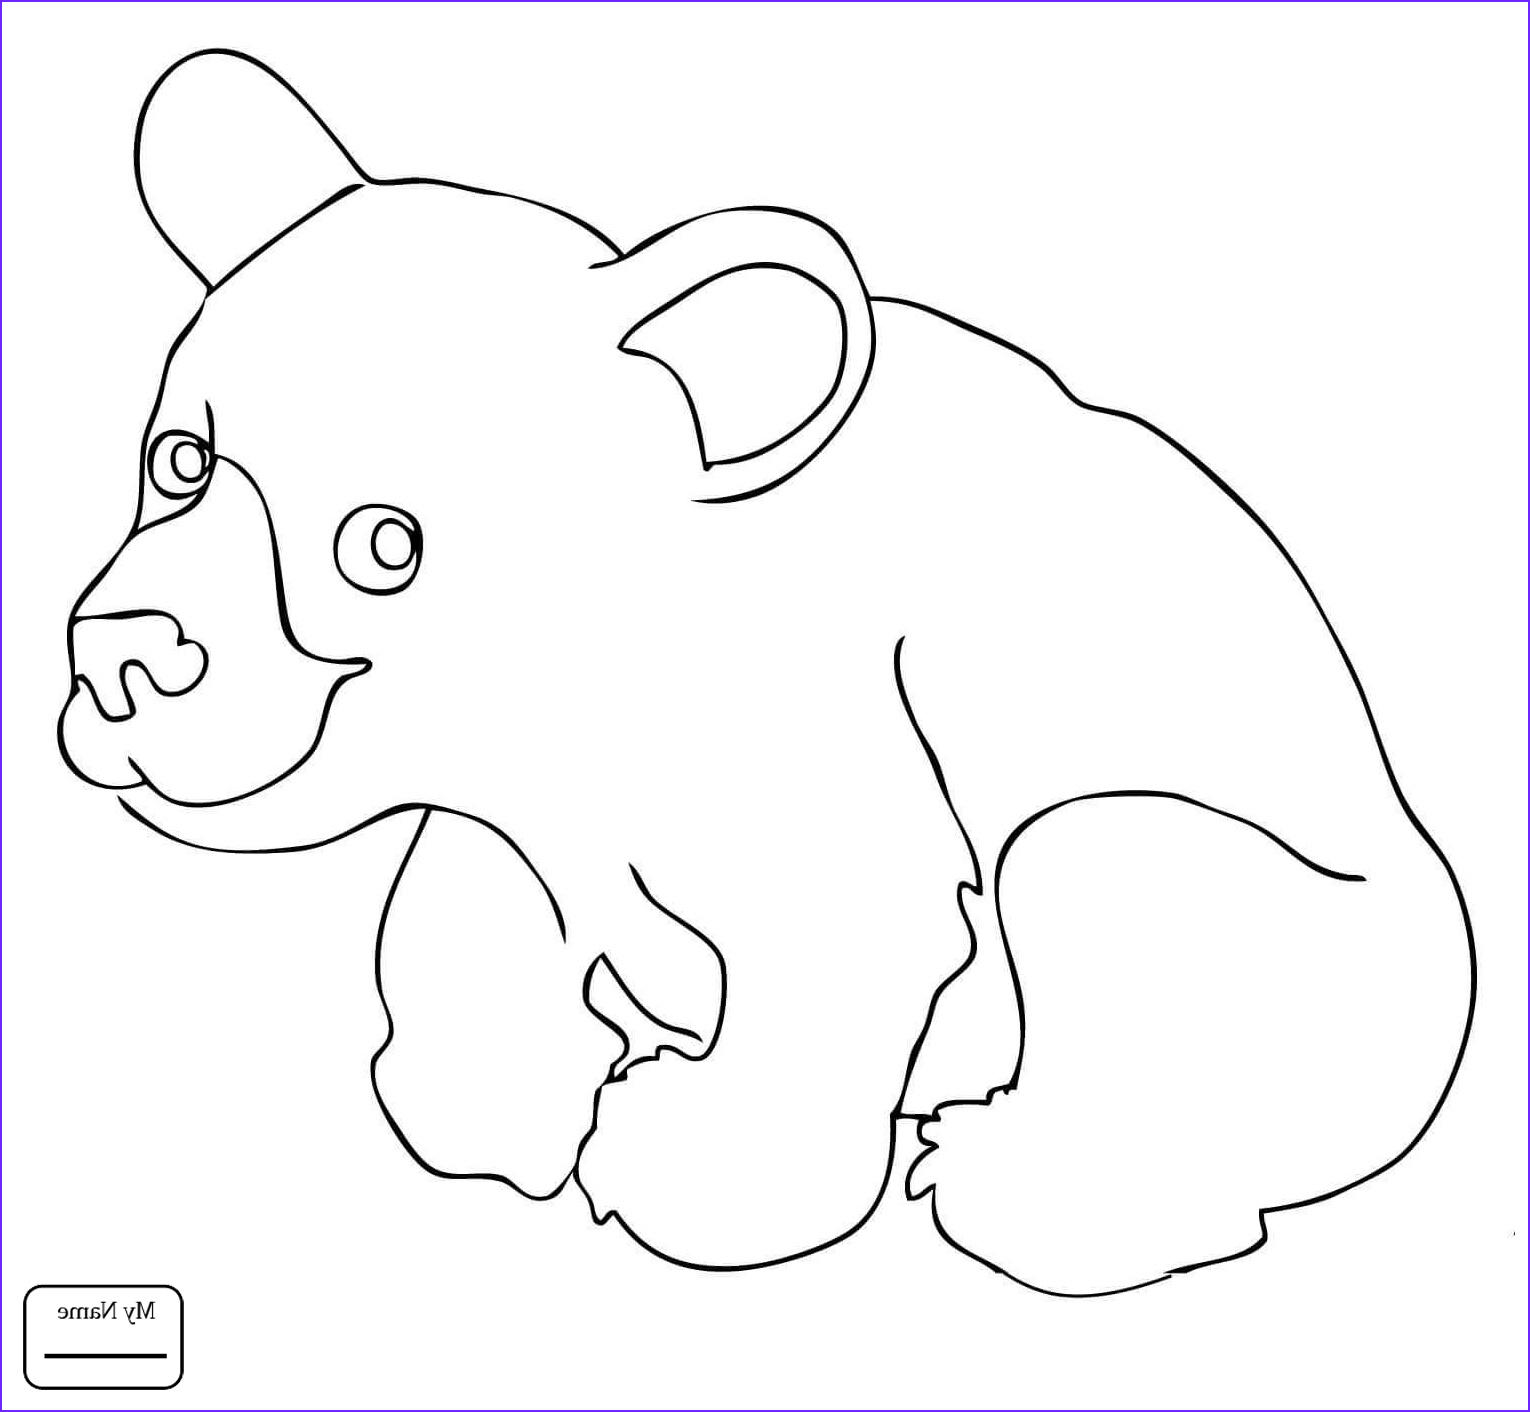 Black Bear Coloring Page Beautiful Images Coloring Pages Black Bear at Getcolorings